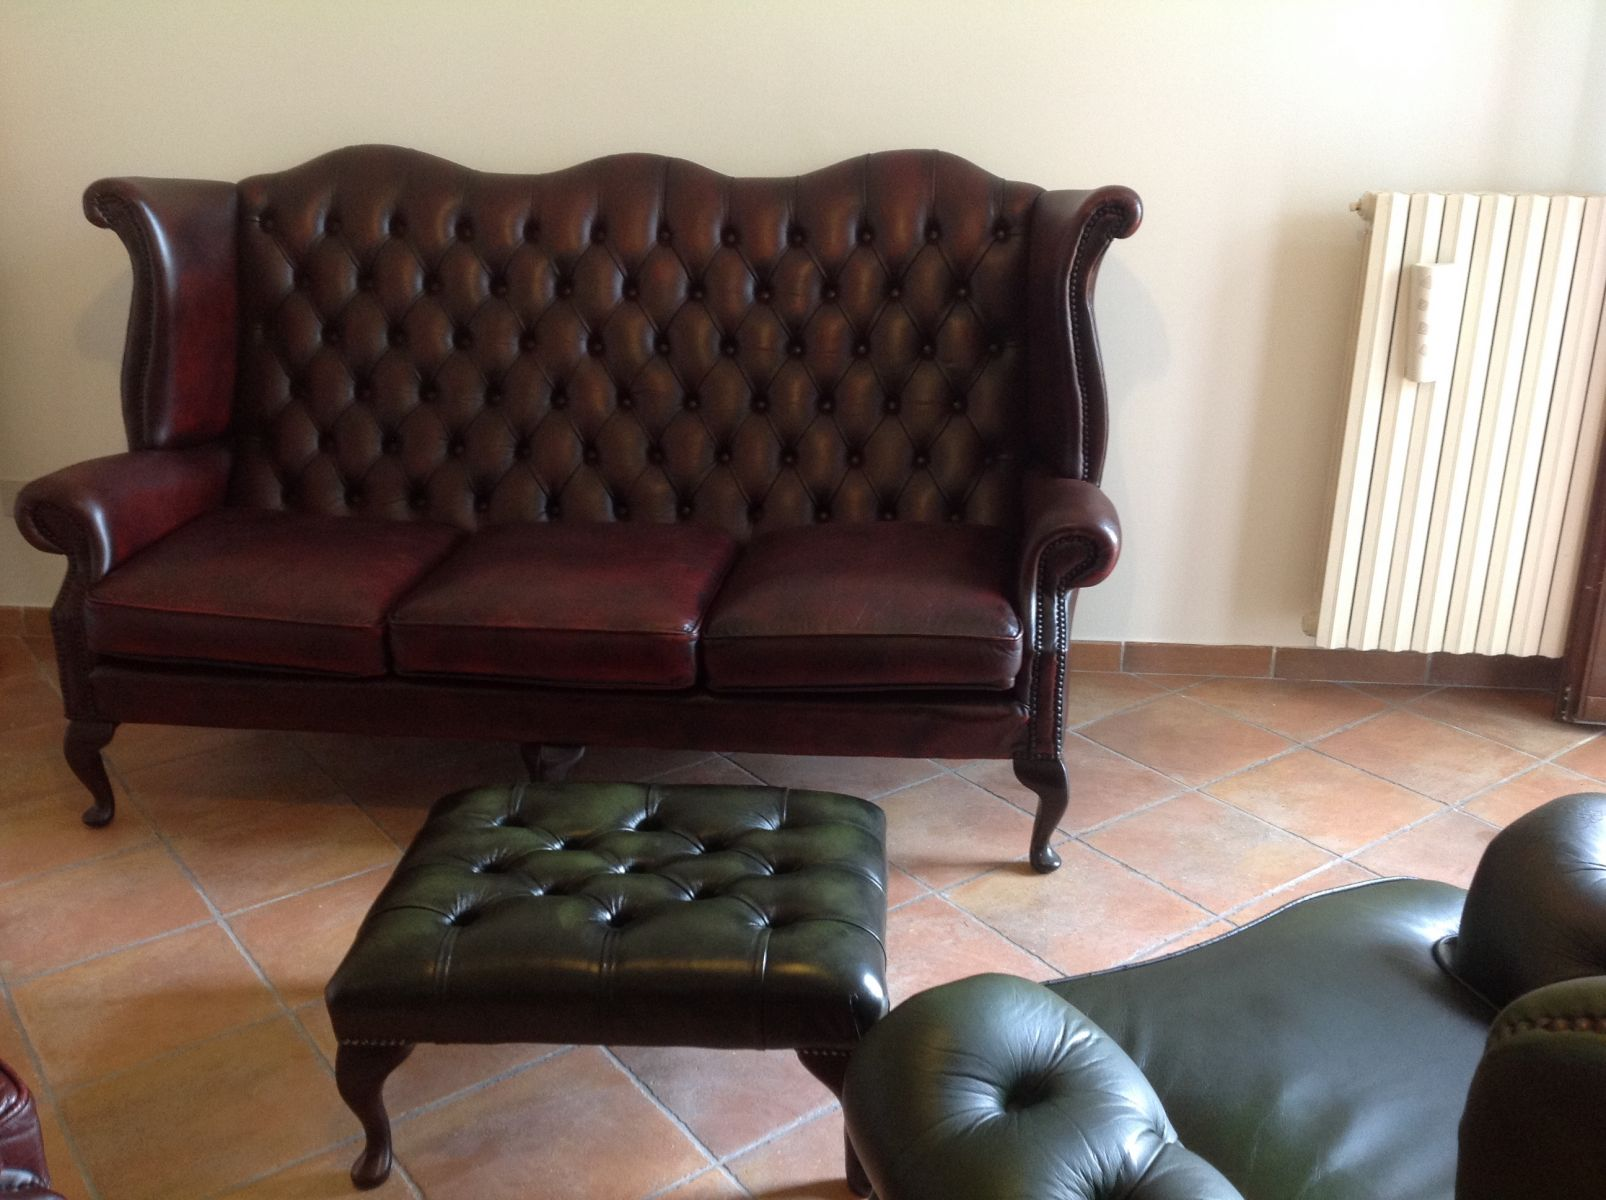 Example of furniture for a home img_7516.jpg